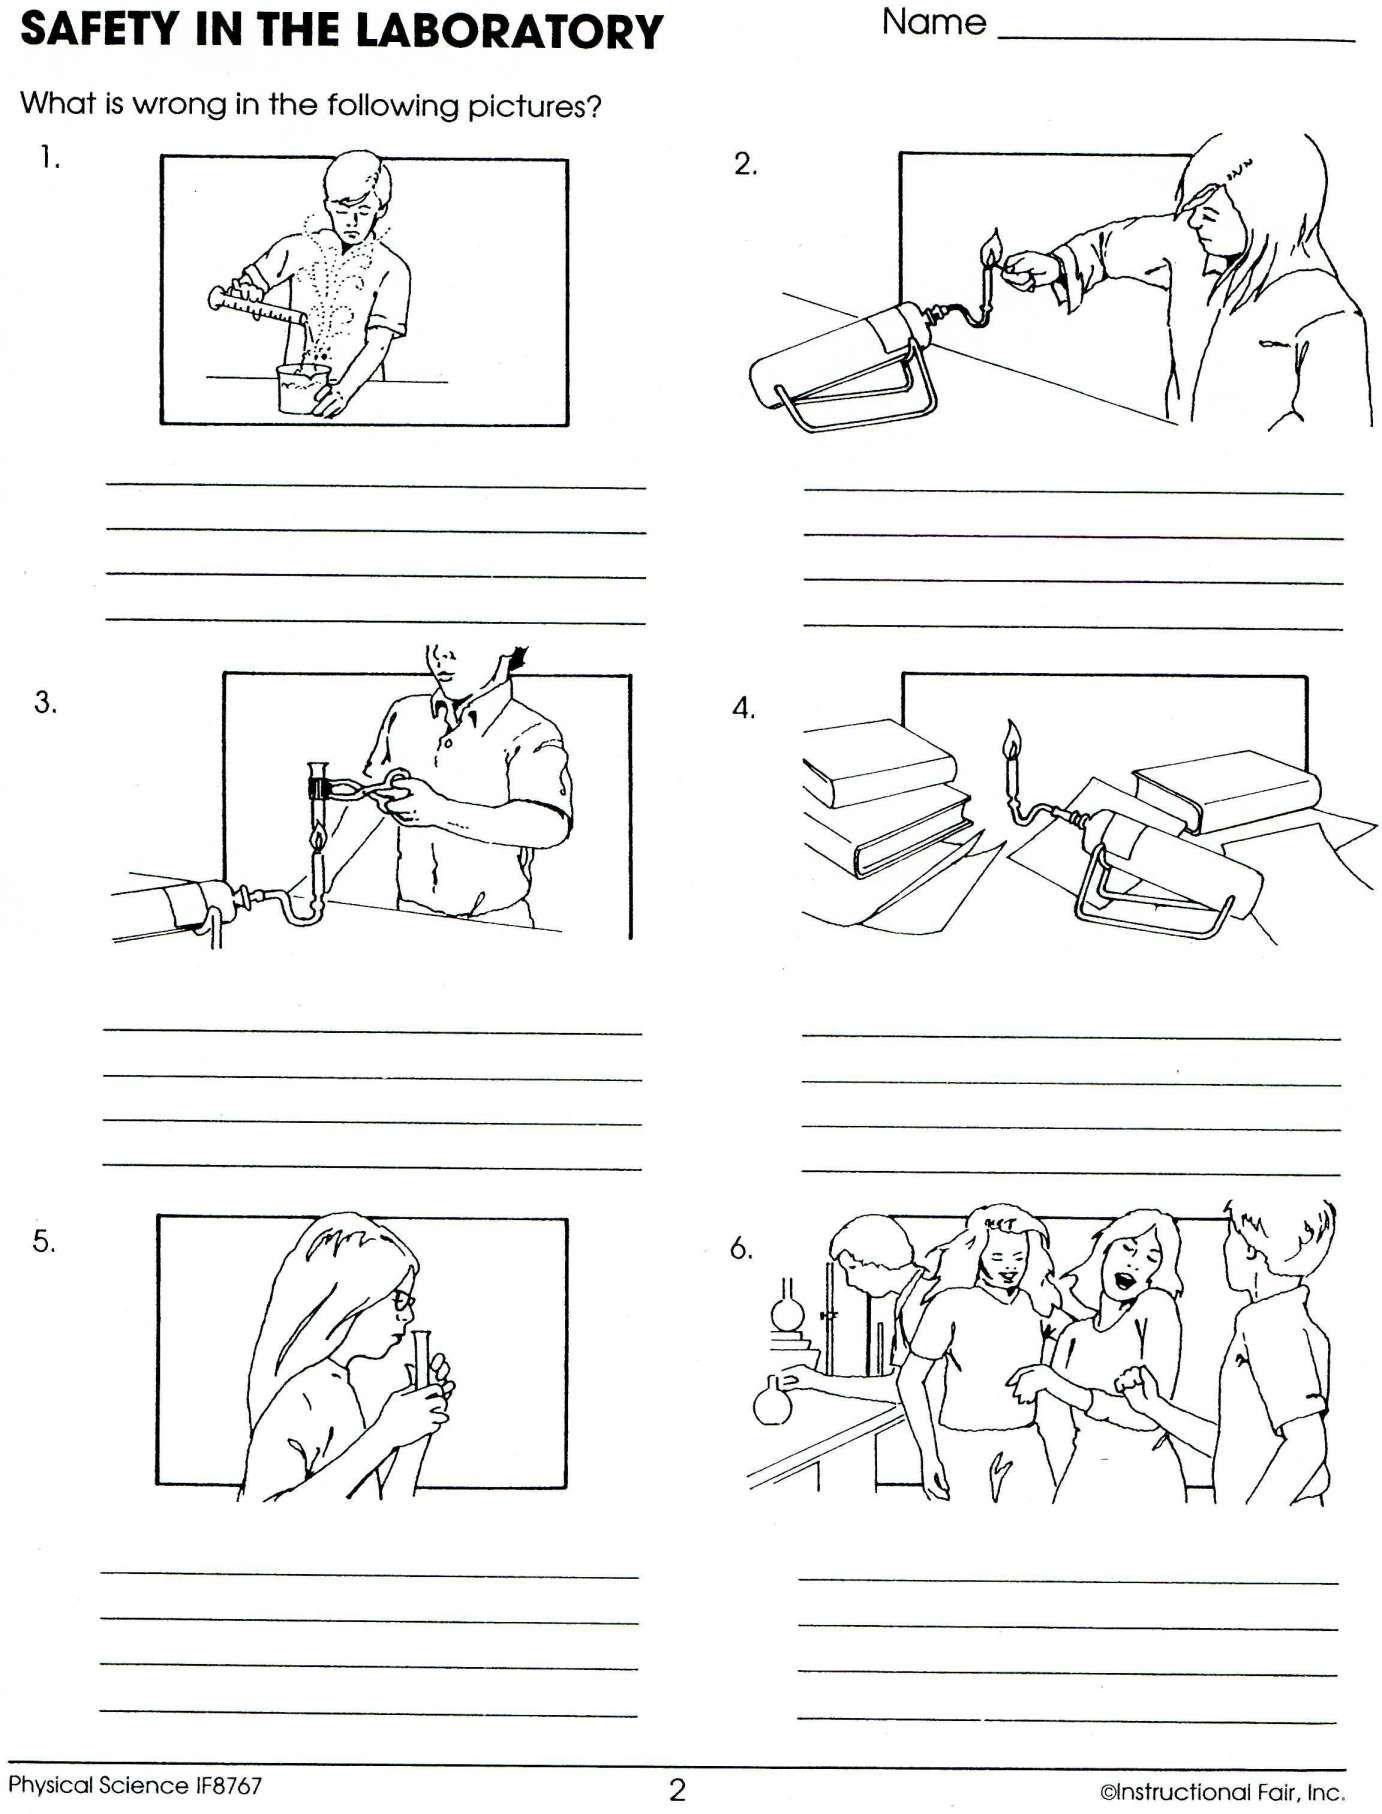 7 Lab Safety Worksheet For Physical Science